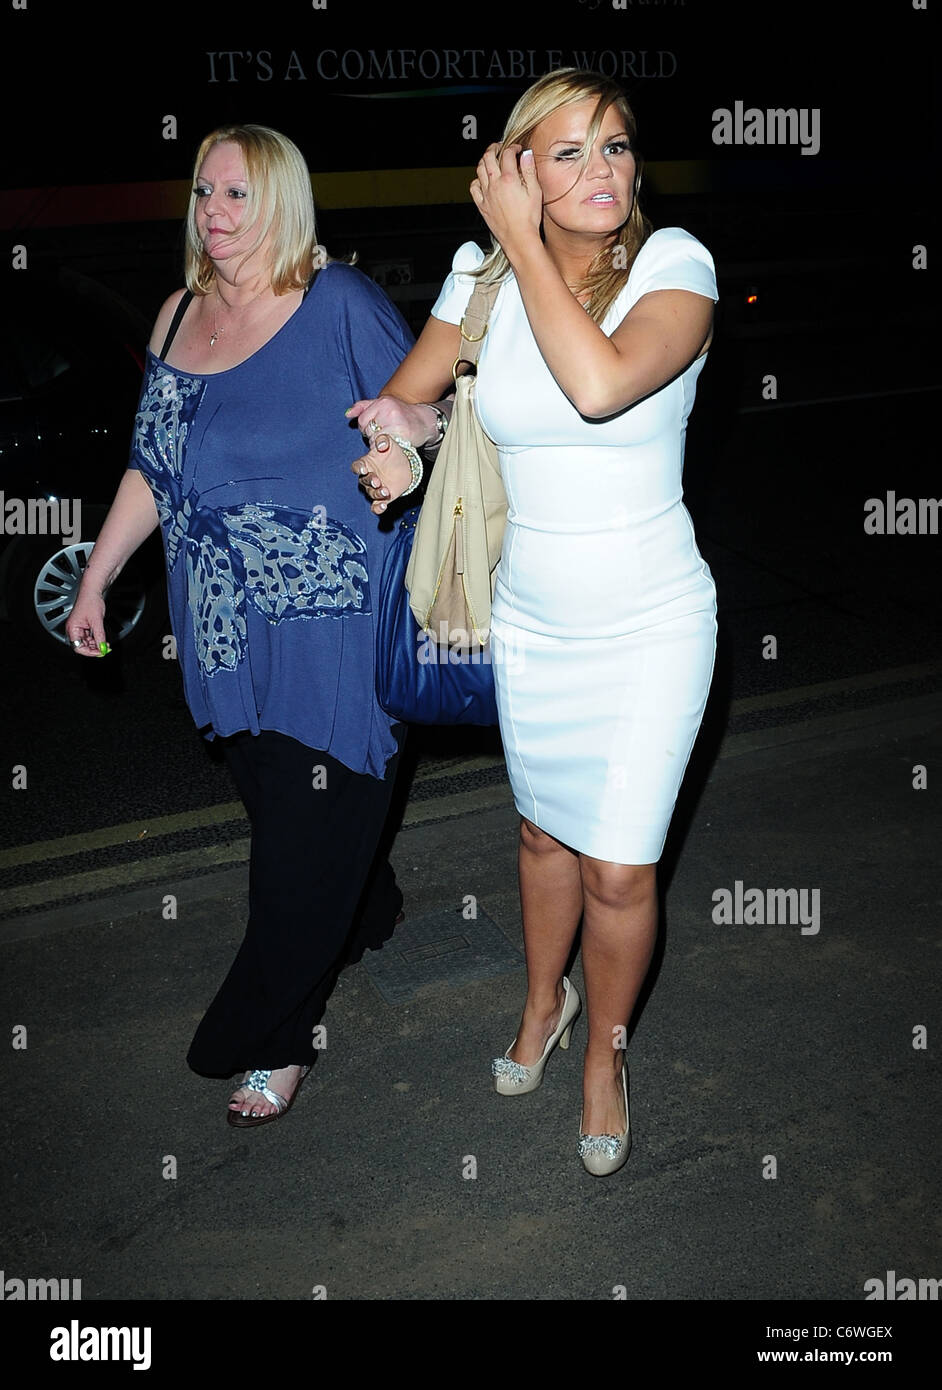 White apron in warrington